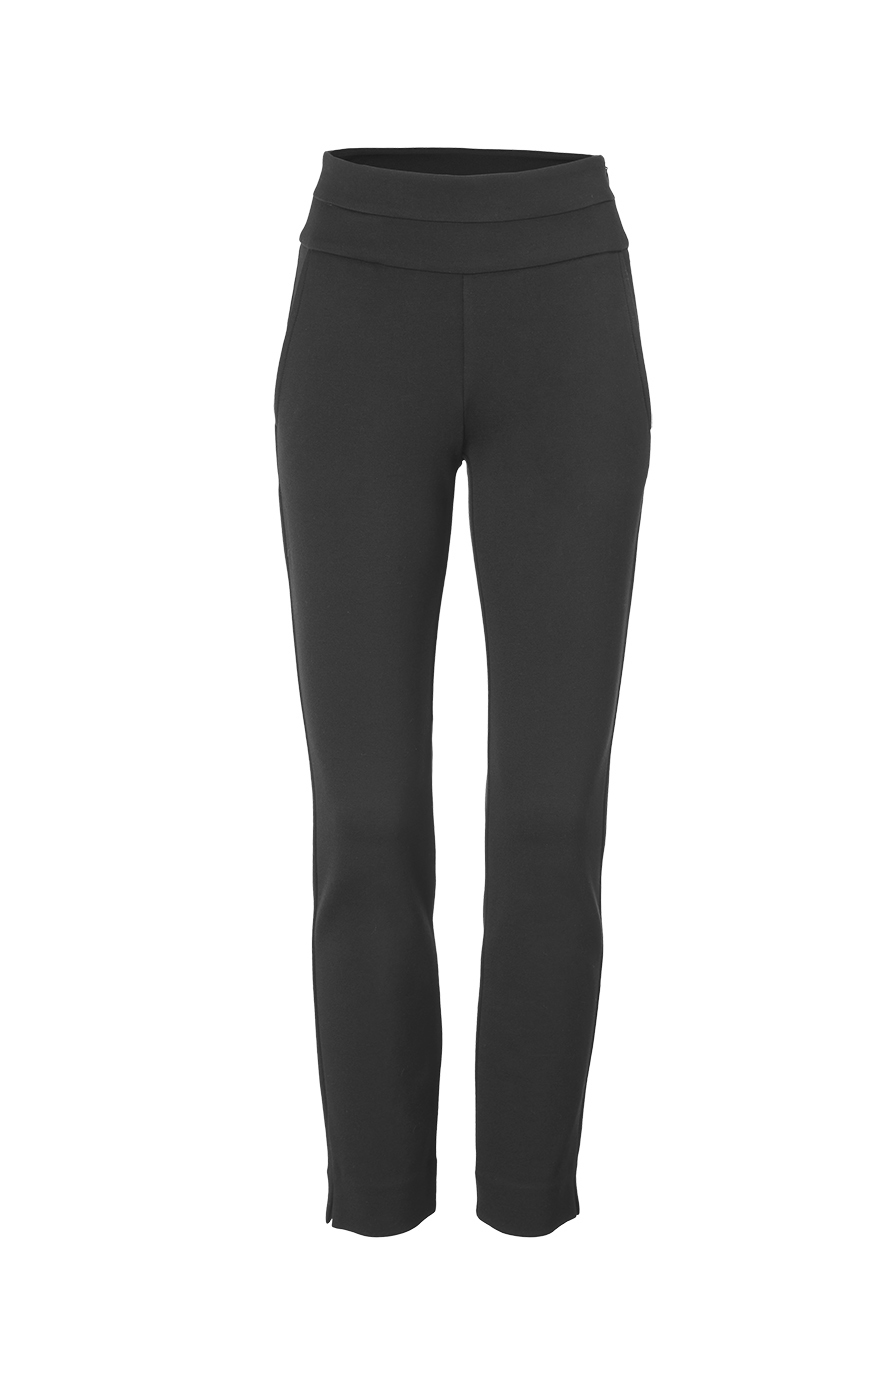 cabi's Banded Waist Trouser